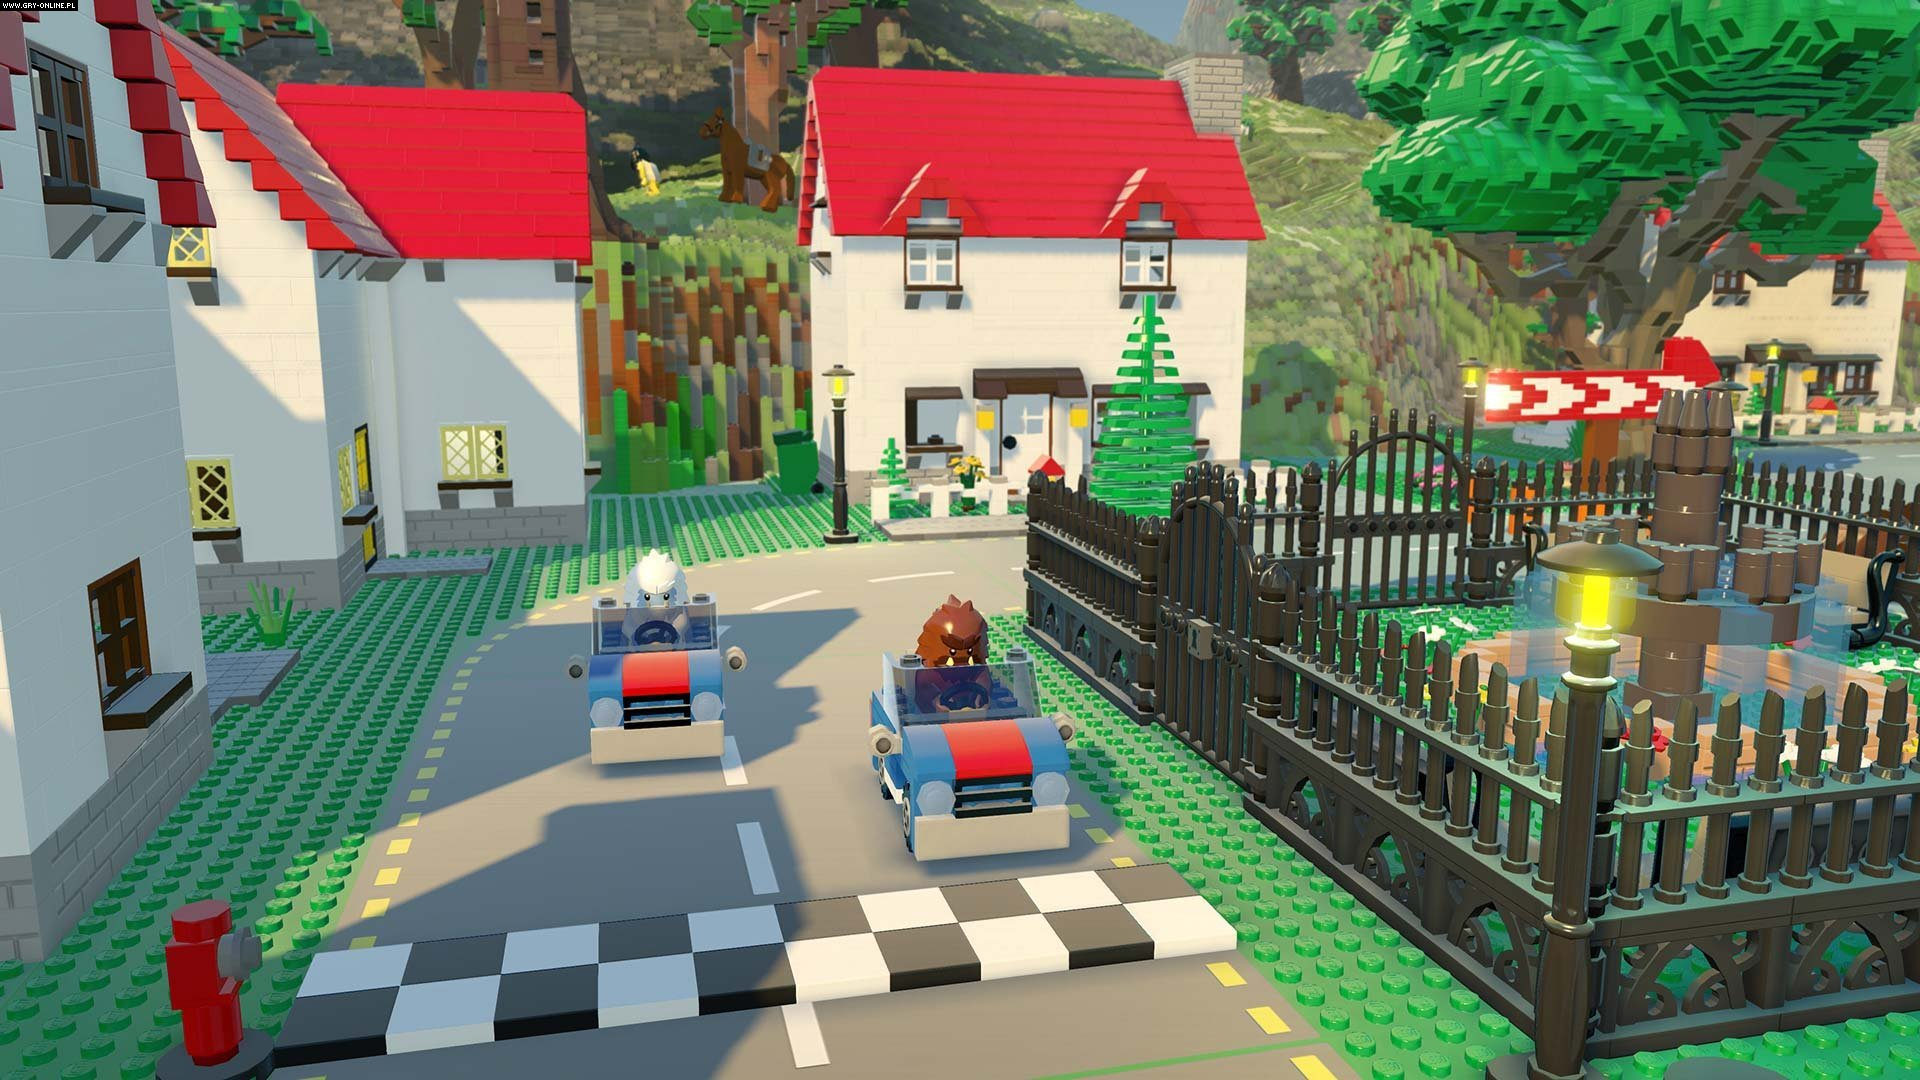 LEGO Worlds PC, PS4, XONE Games Image 7/26, Traveller's Tales, Warner Bros. Interactive Entertainment